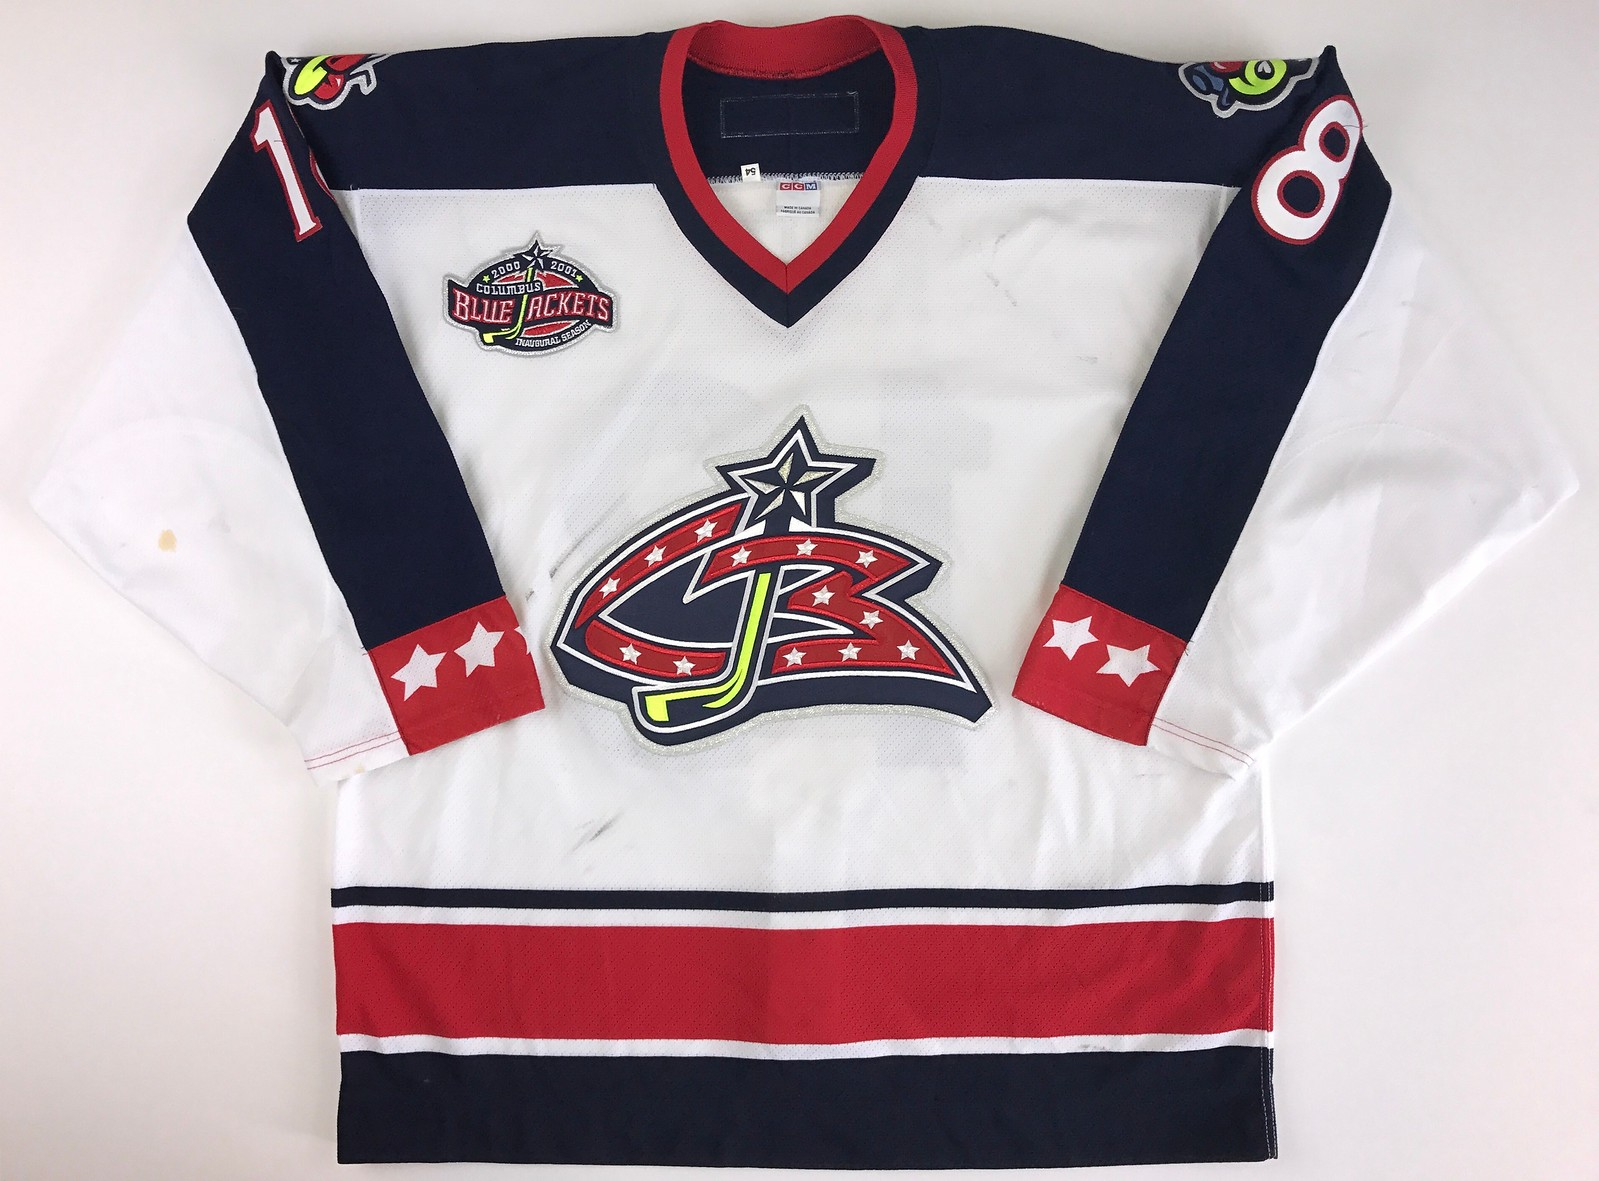 https://sites.google.com/site/columbusbluejacketsjerseyguide/ccm-koho